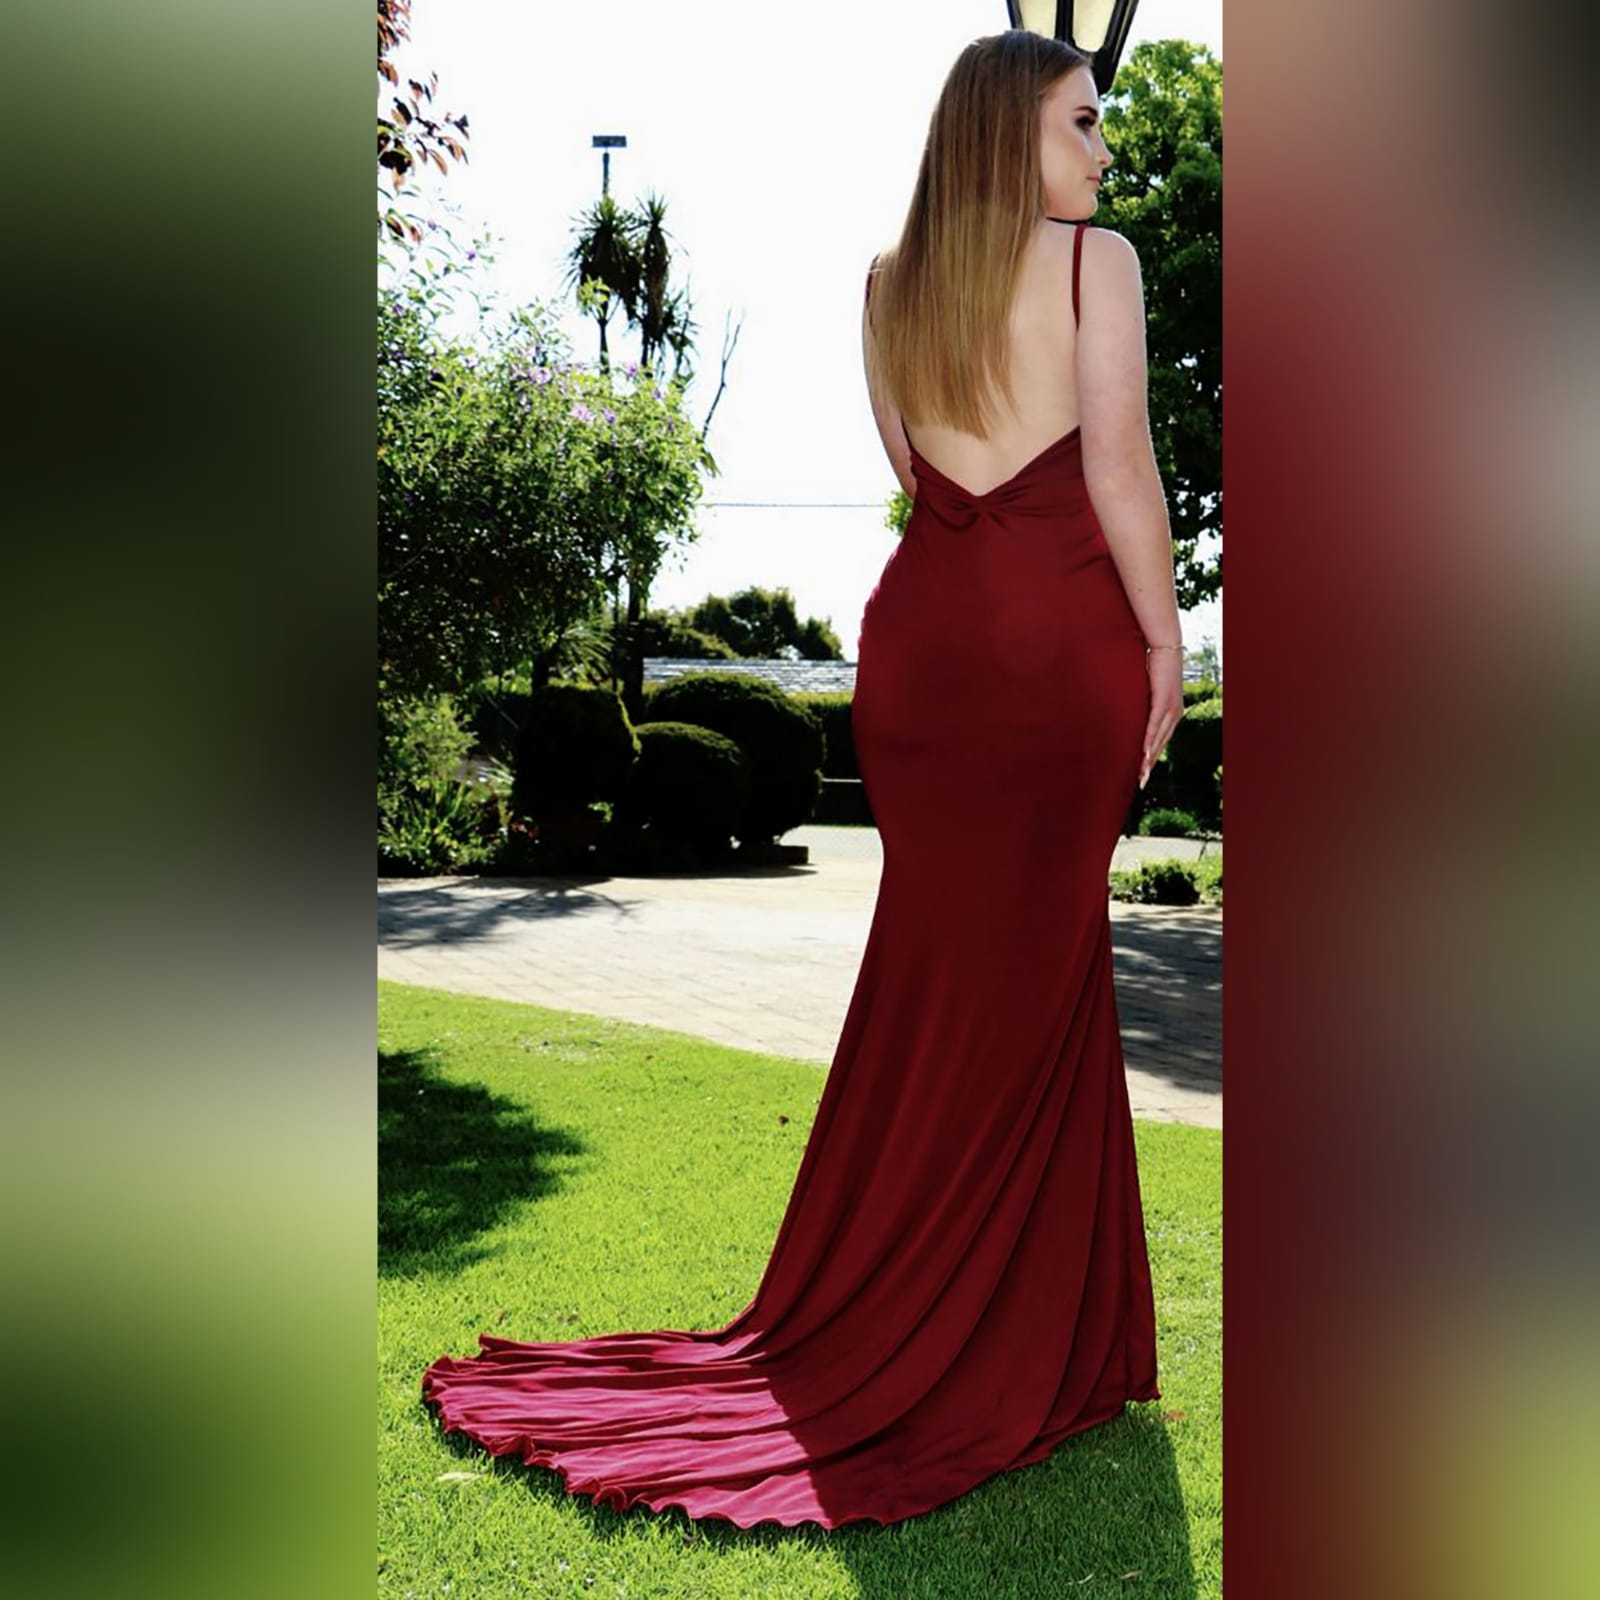 Deep red plunging neckline prom dress 5 deep red plunging neckline prom dress, low open back with thin should straps and a long train.